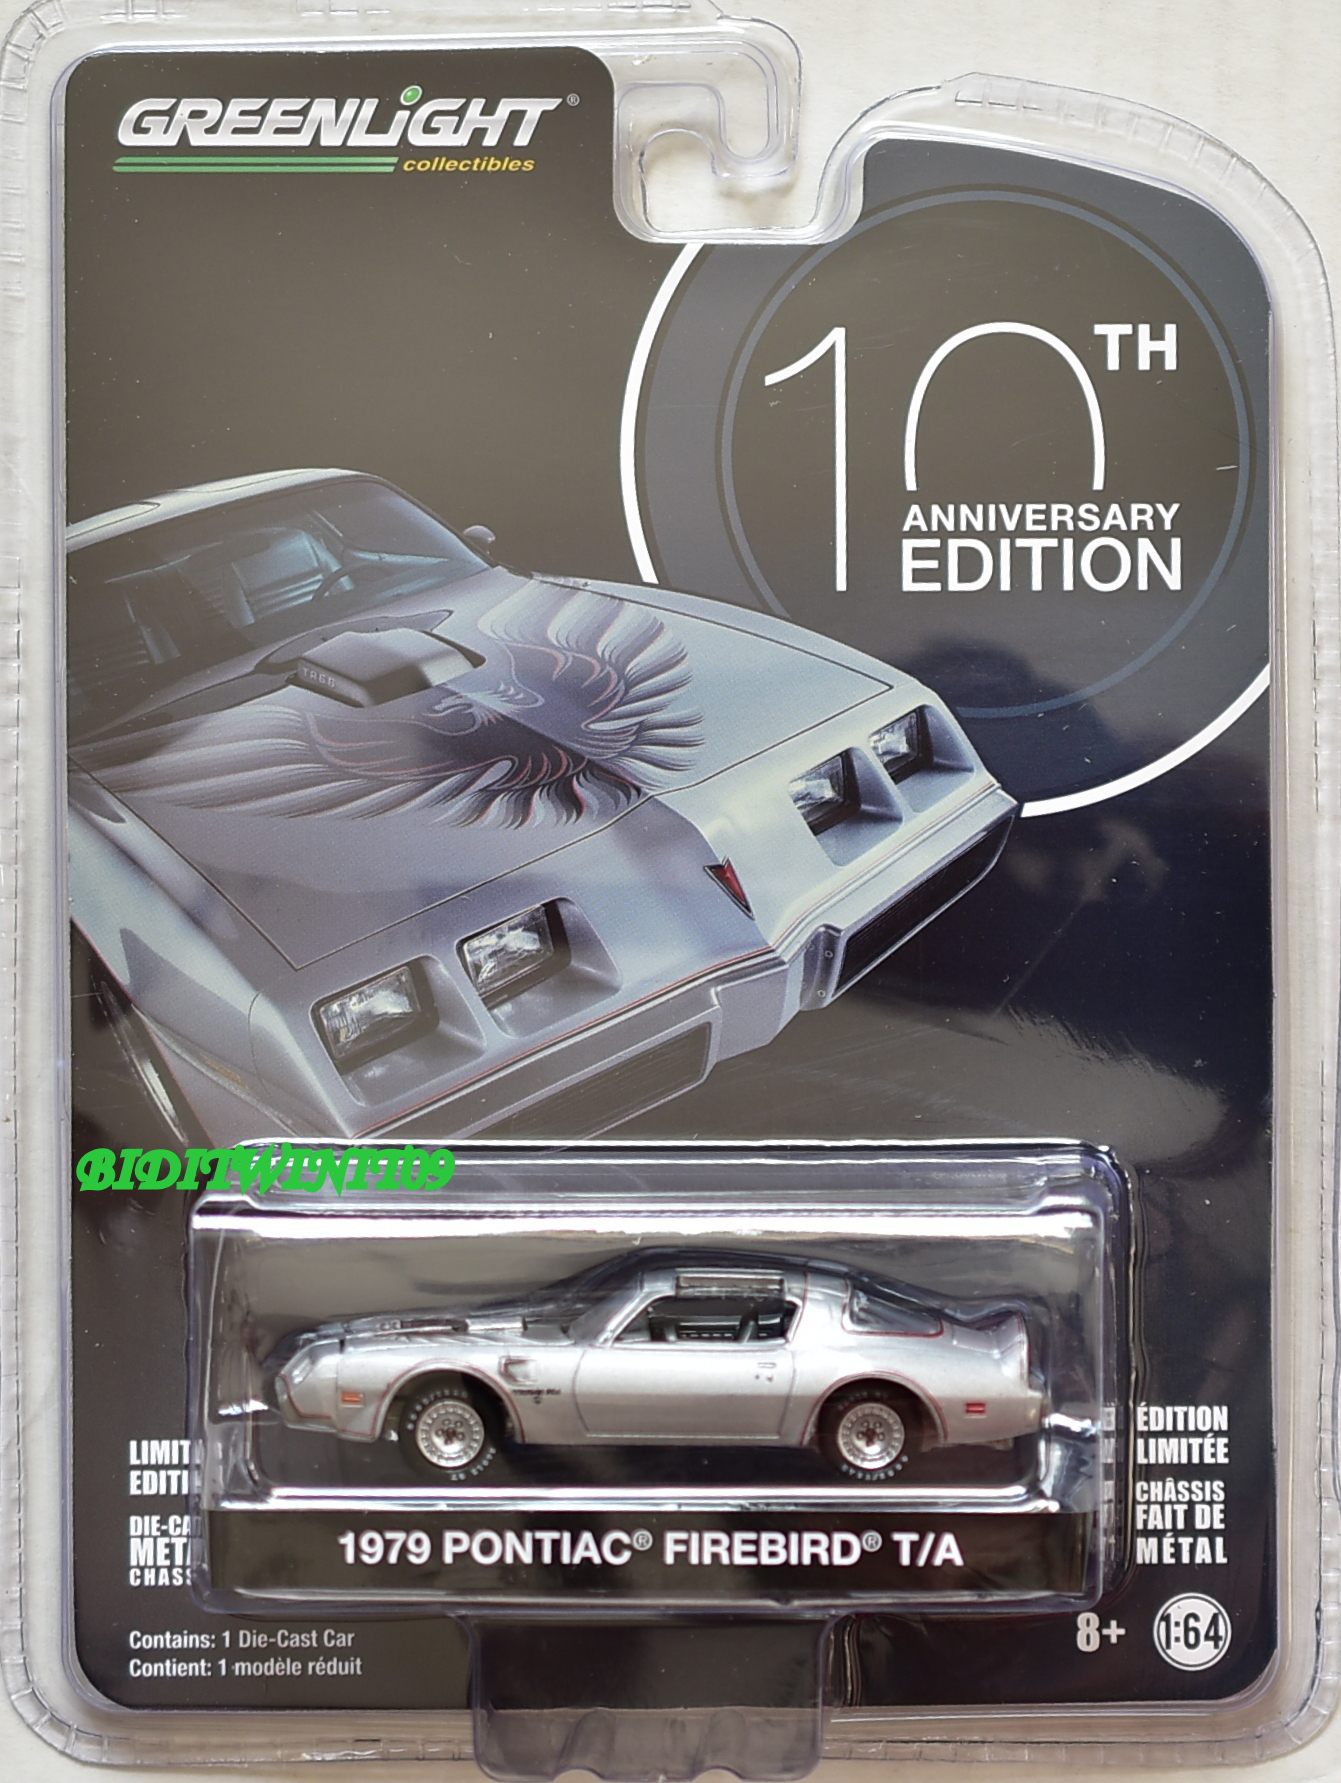 GREENLIGHT ANNIVERSARY SERIES 6 1979 PONTIAC FIREBIRD T/A